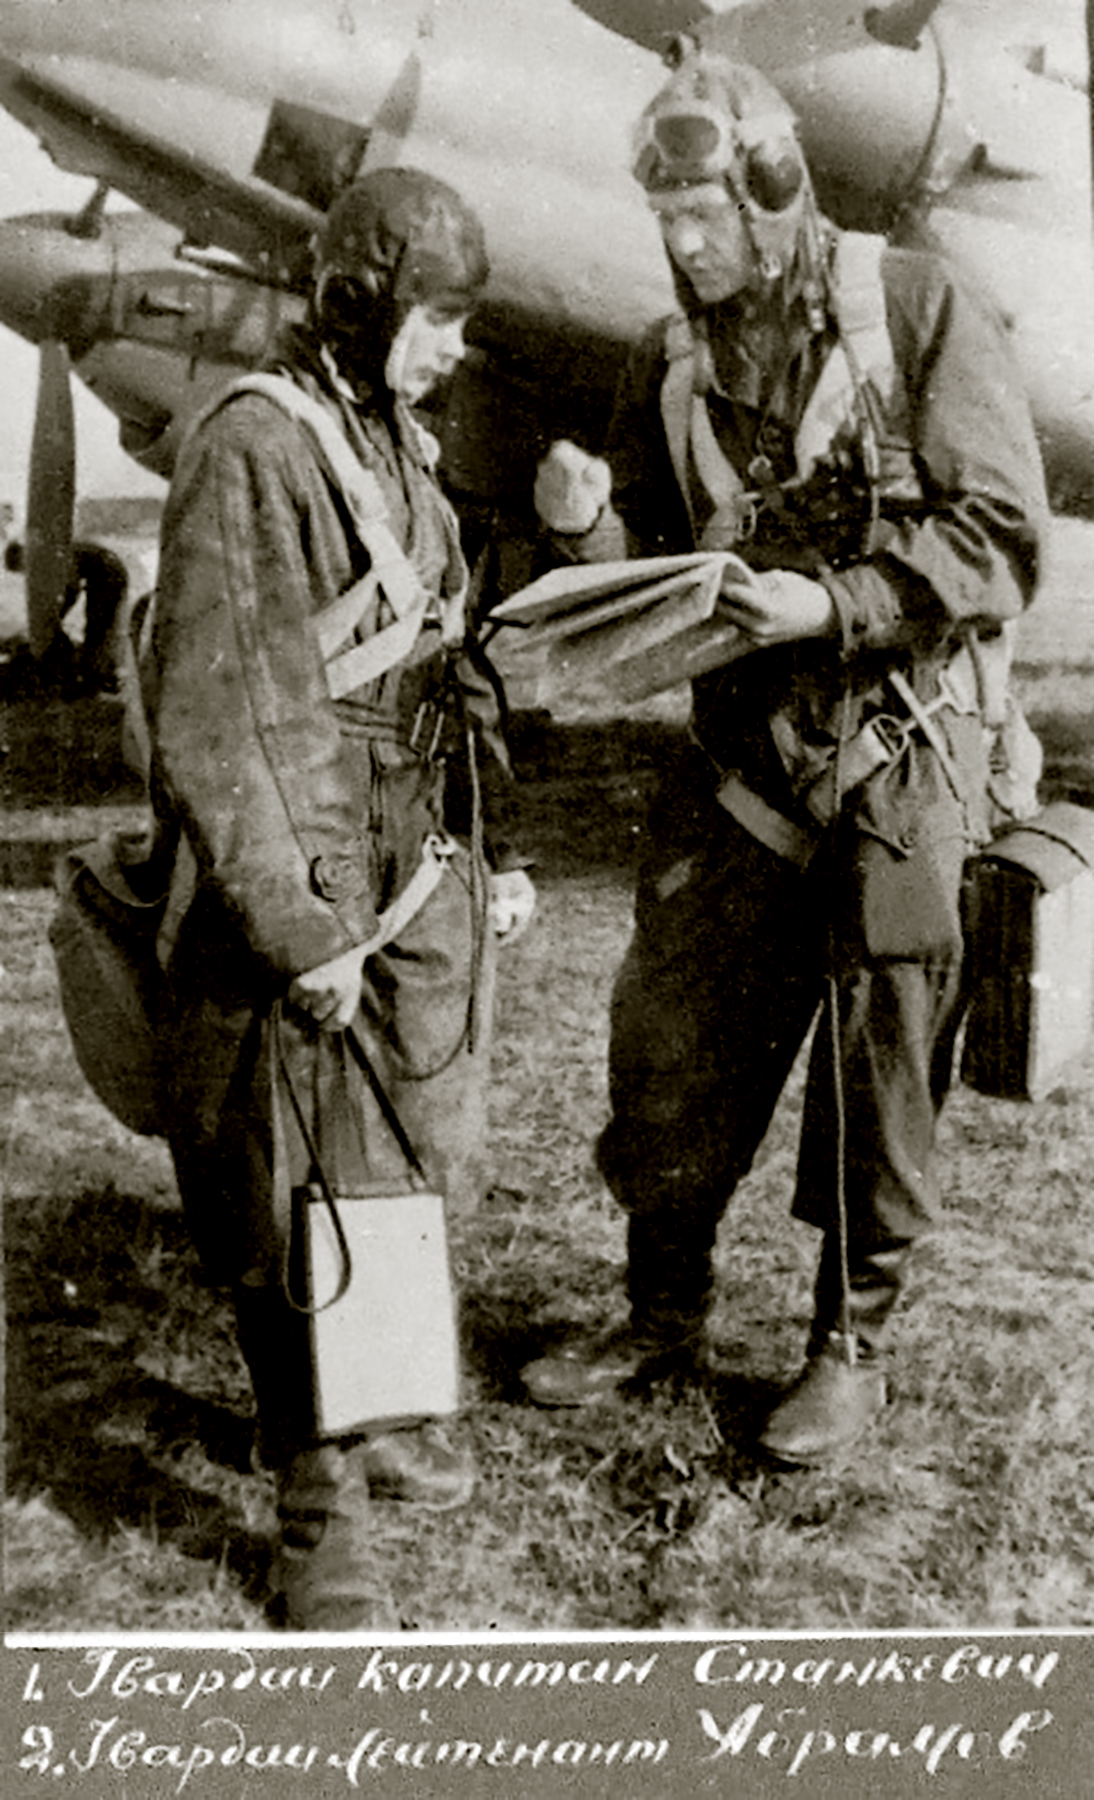 Aircrew Soviet 48GAPDr with Captain Stankevich and Guard Lieutenant Abramov 01